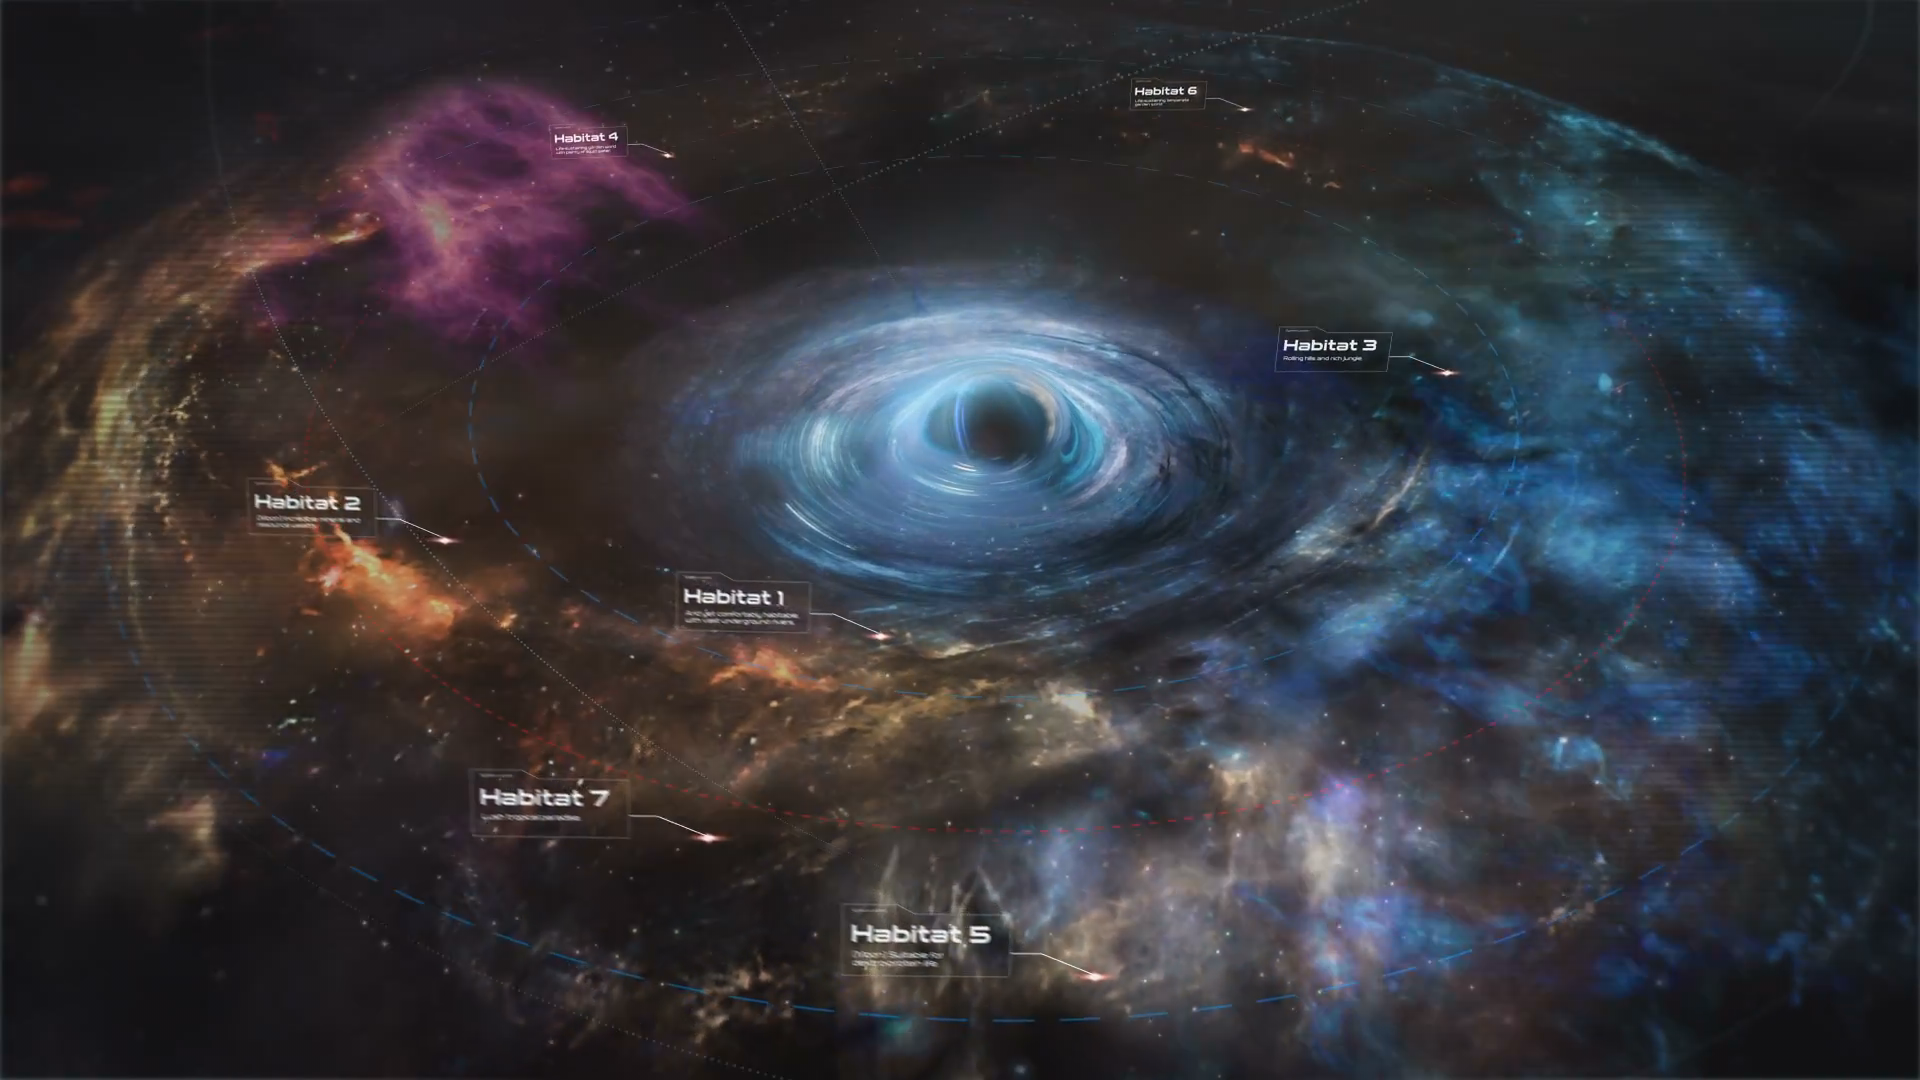 Mass Effect Andromeda Star Map.Heleus Cluster Mass Effect Wiki Fandom Powered By Wikia